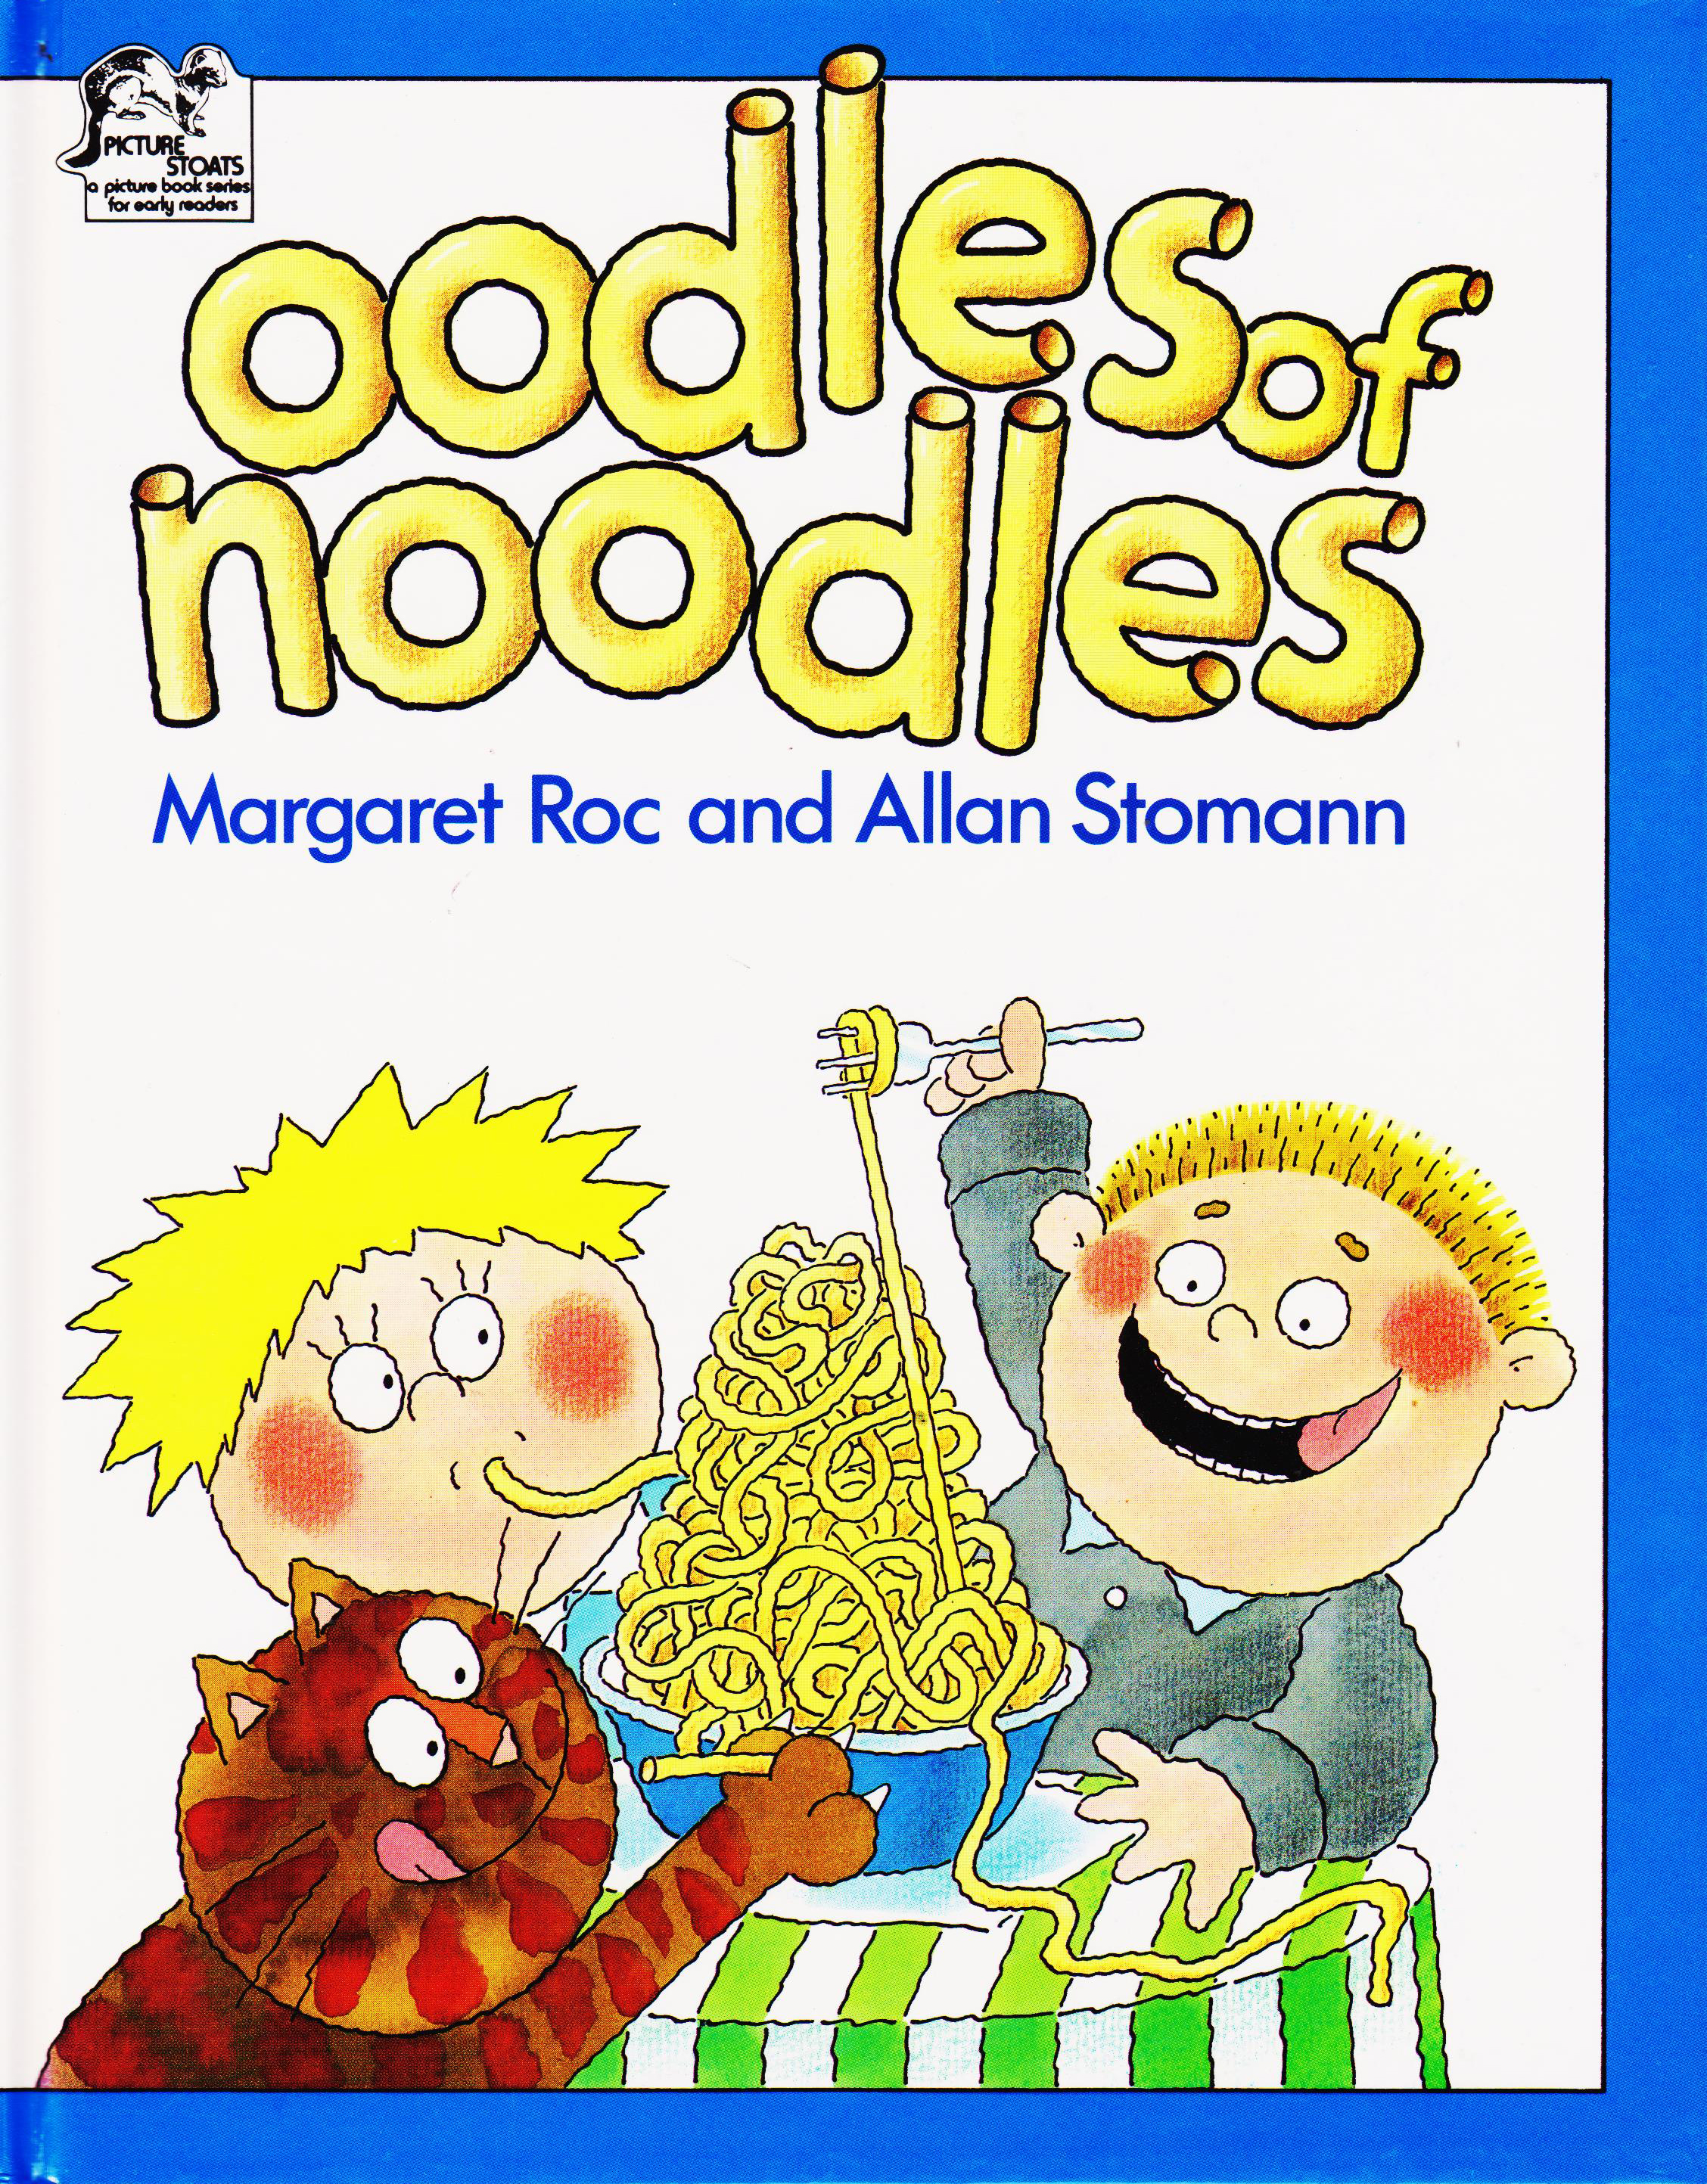 Oodles of Noodles